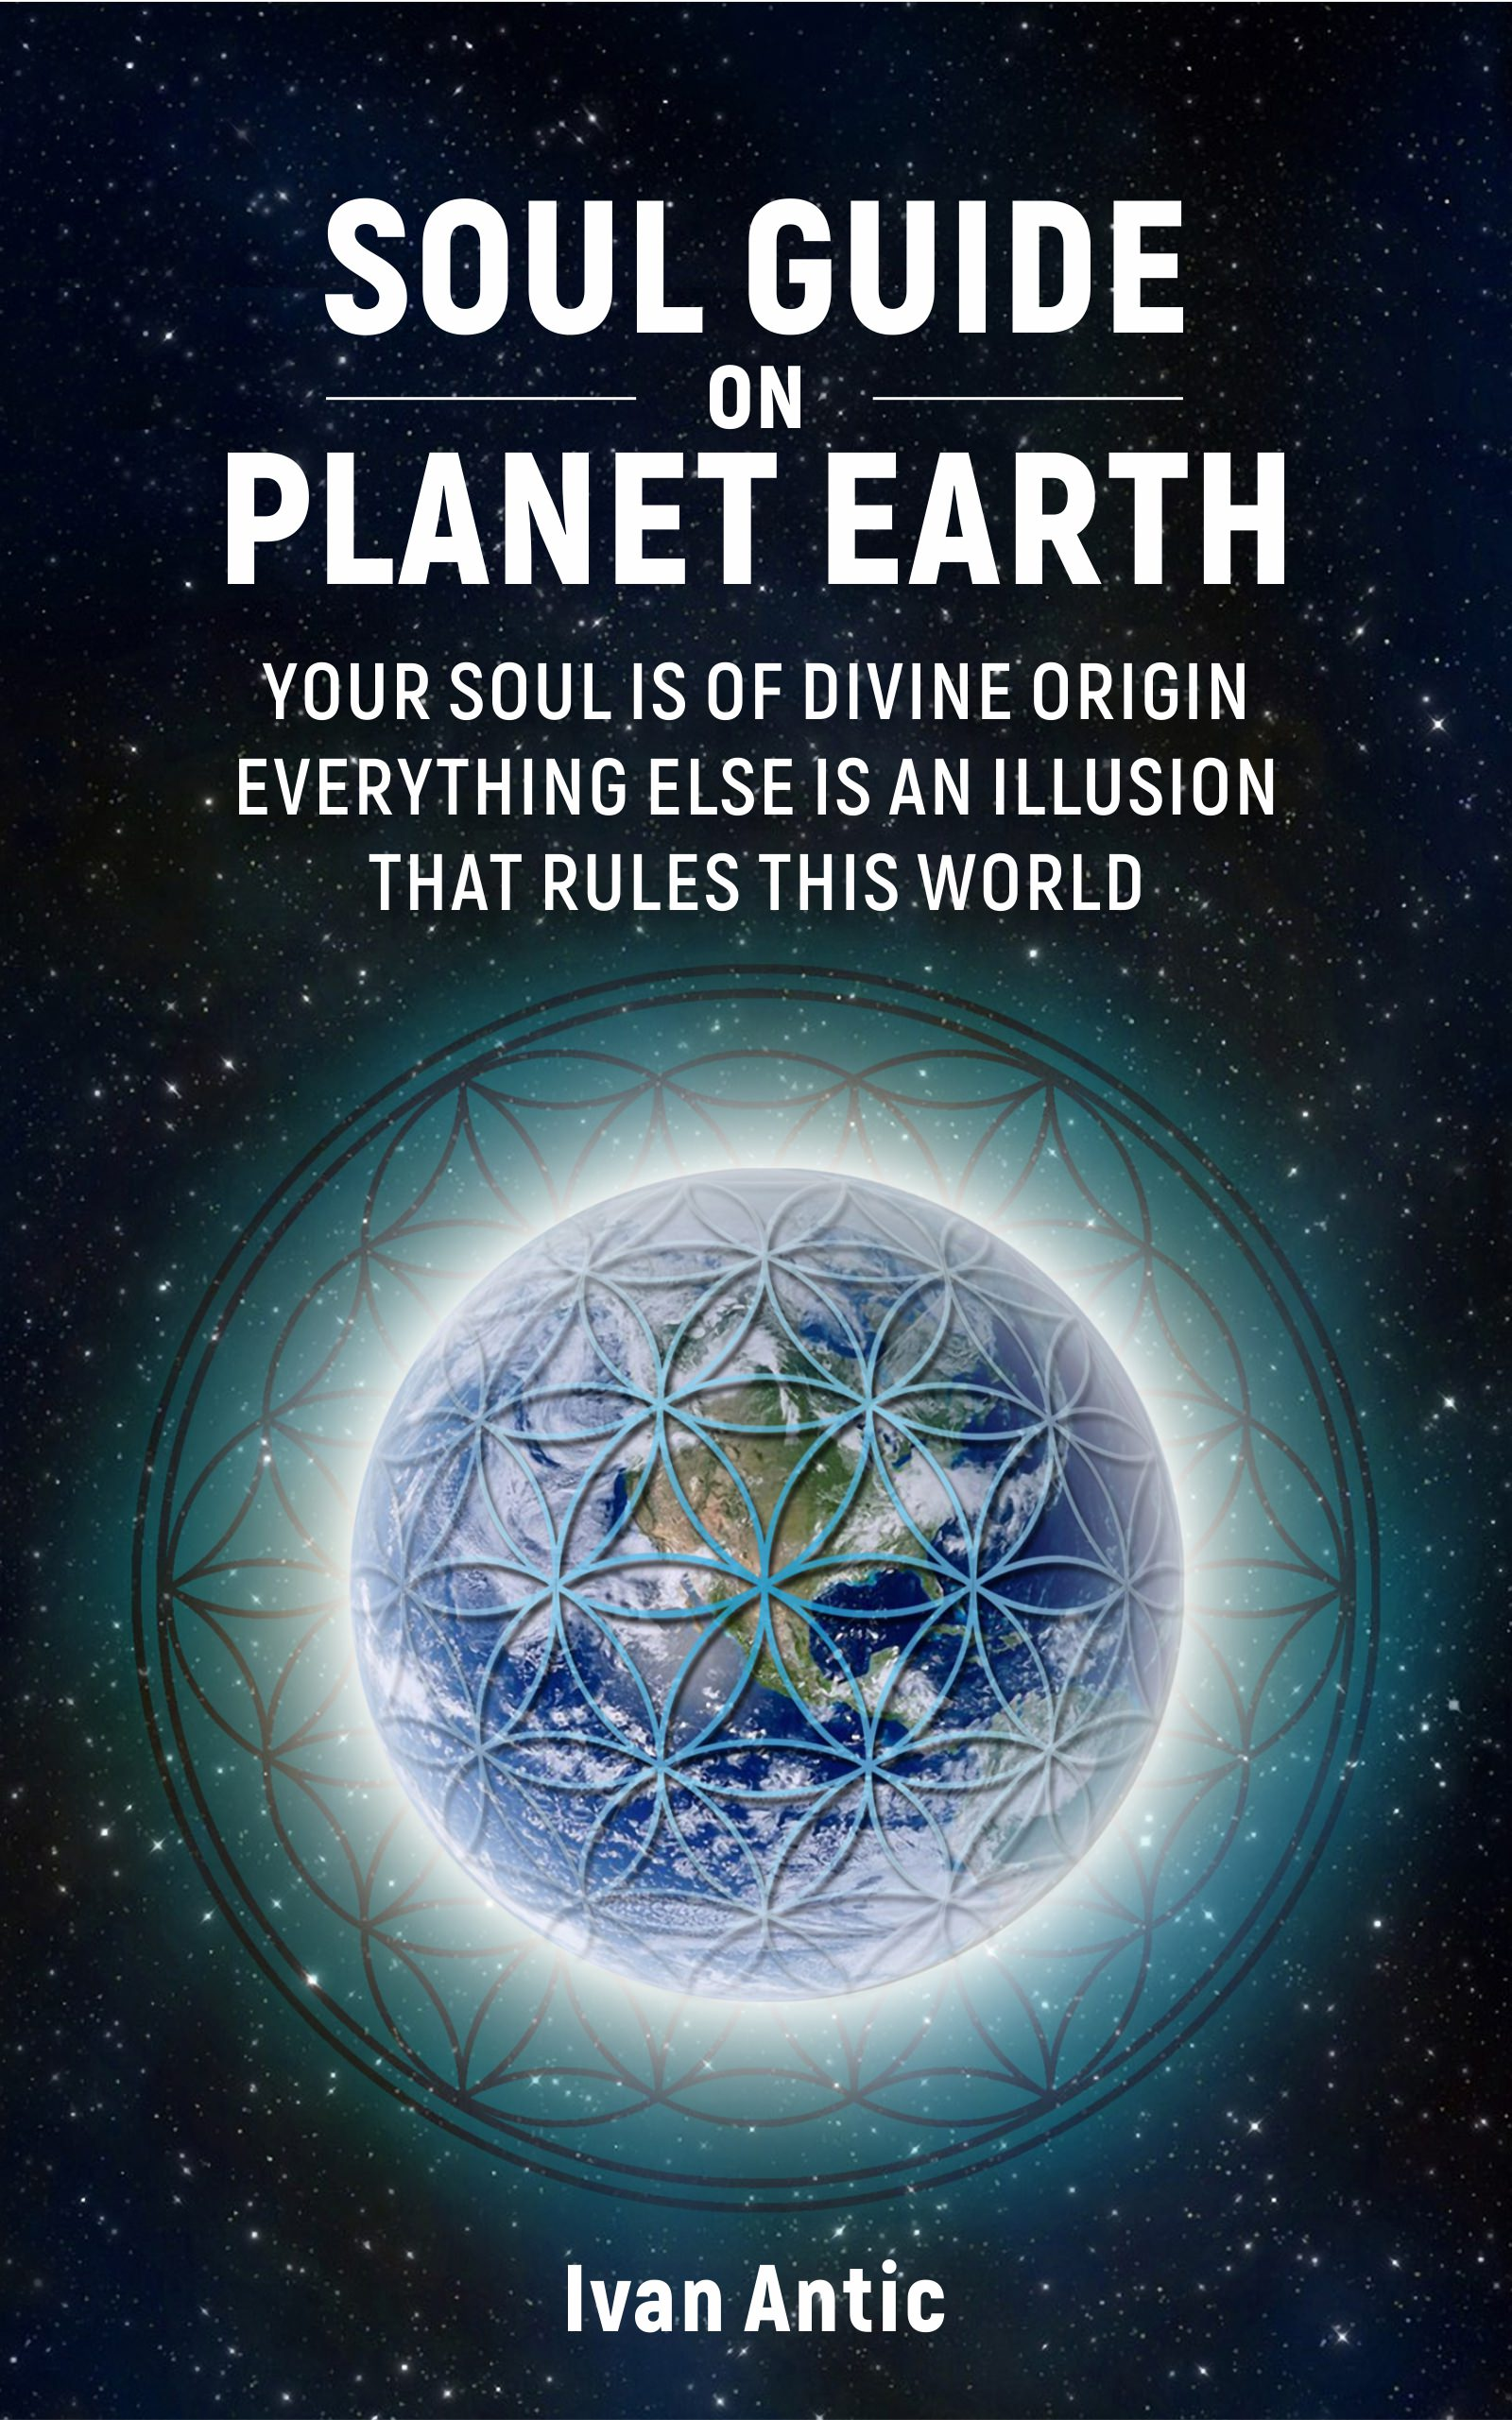 Soul Guide on Planet Earth - Book cover